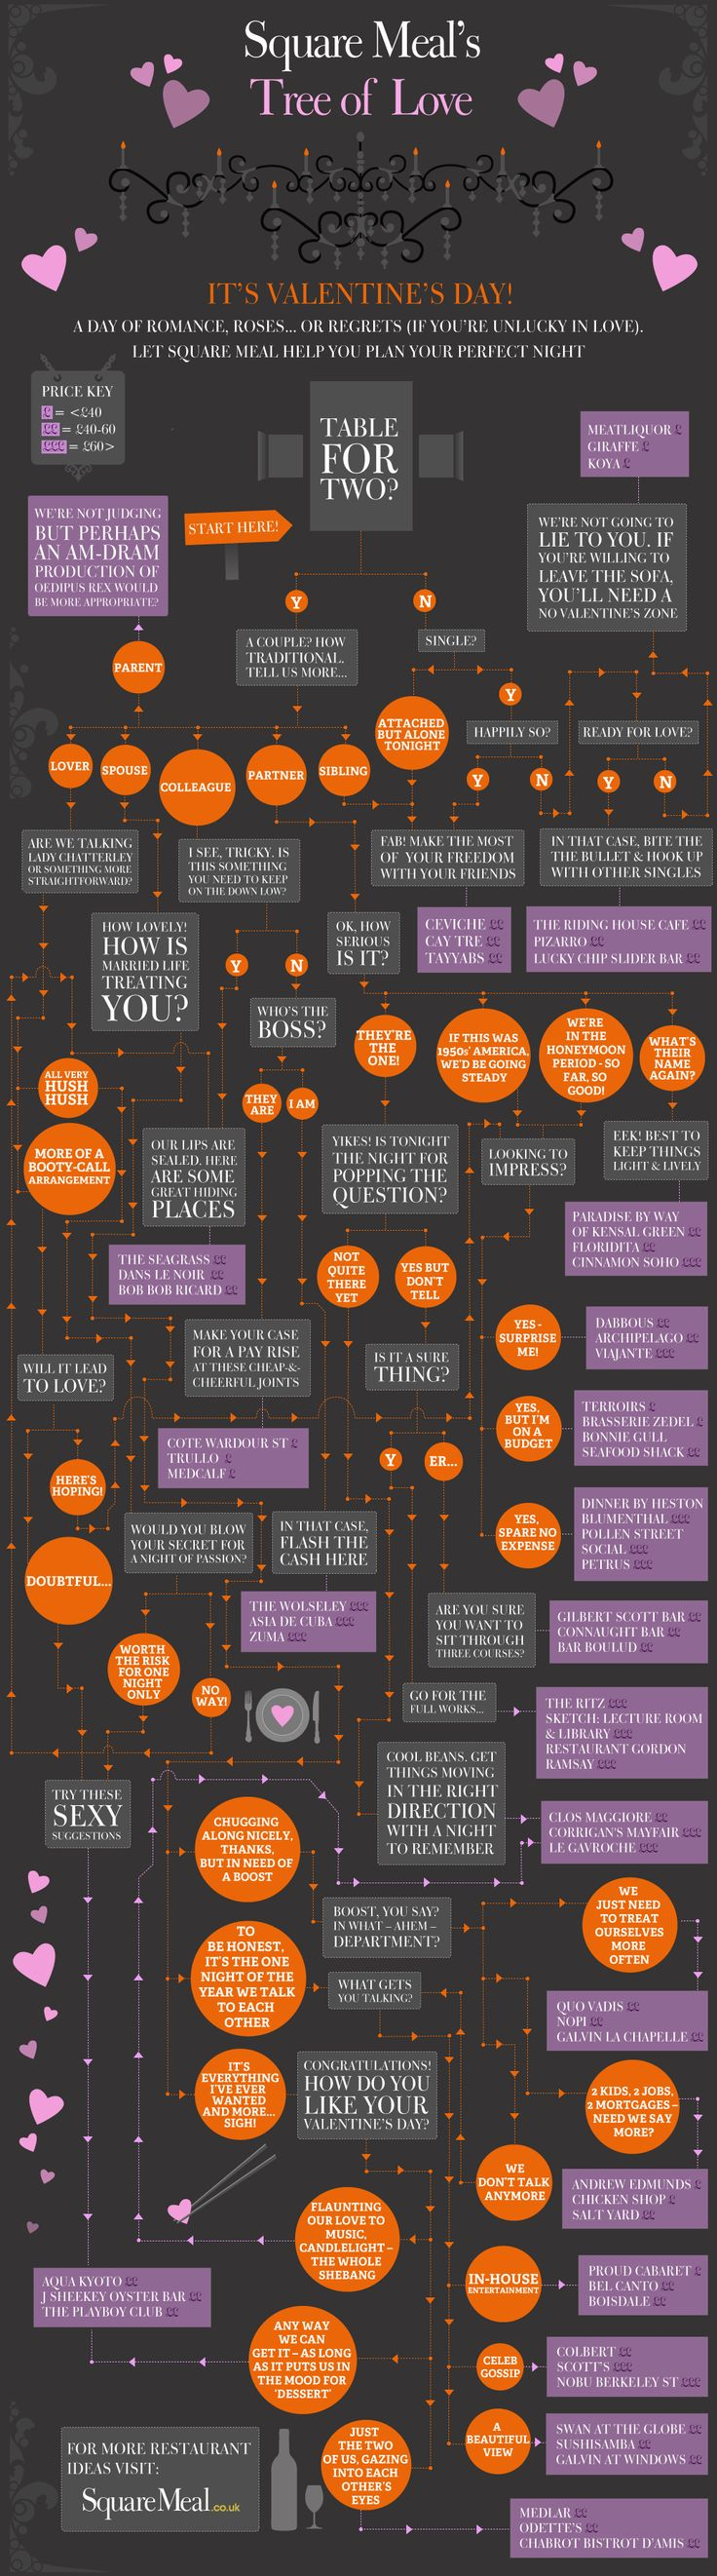 Use this unique decision tree to choose the perfect restaurant for your Valentines Day date.